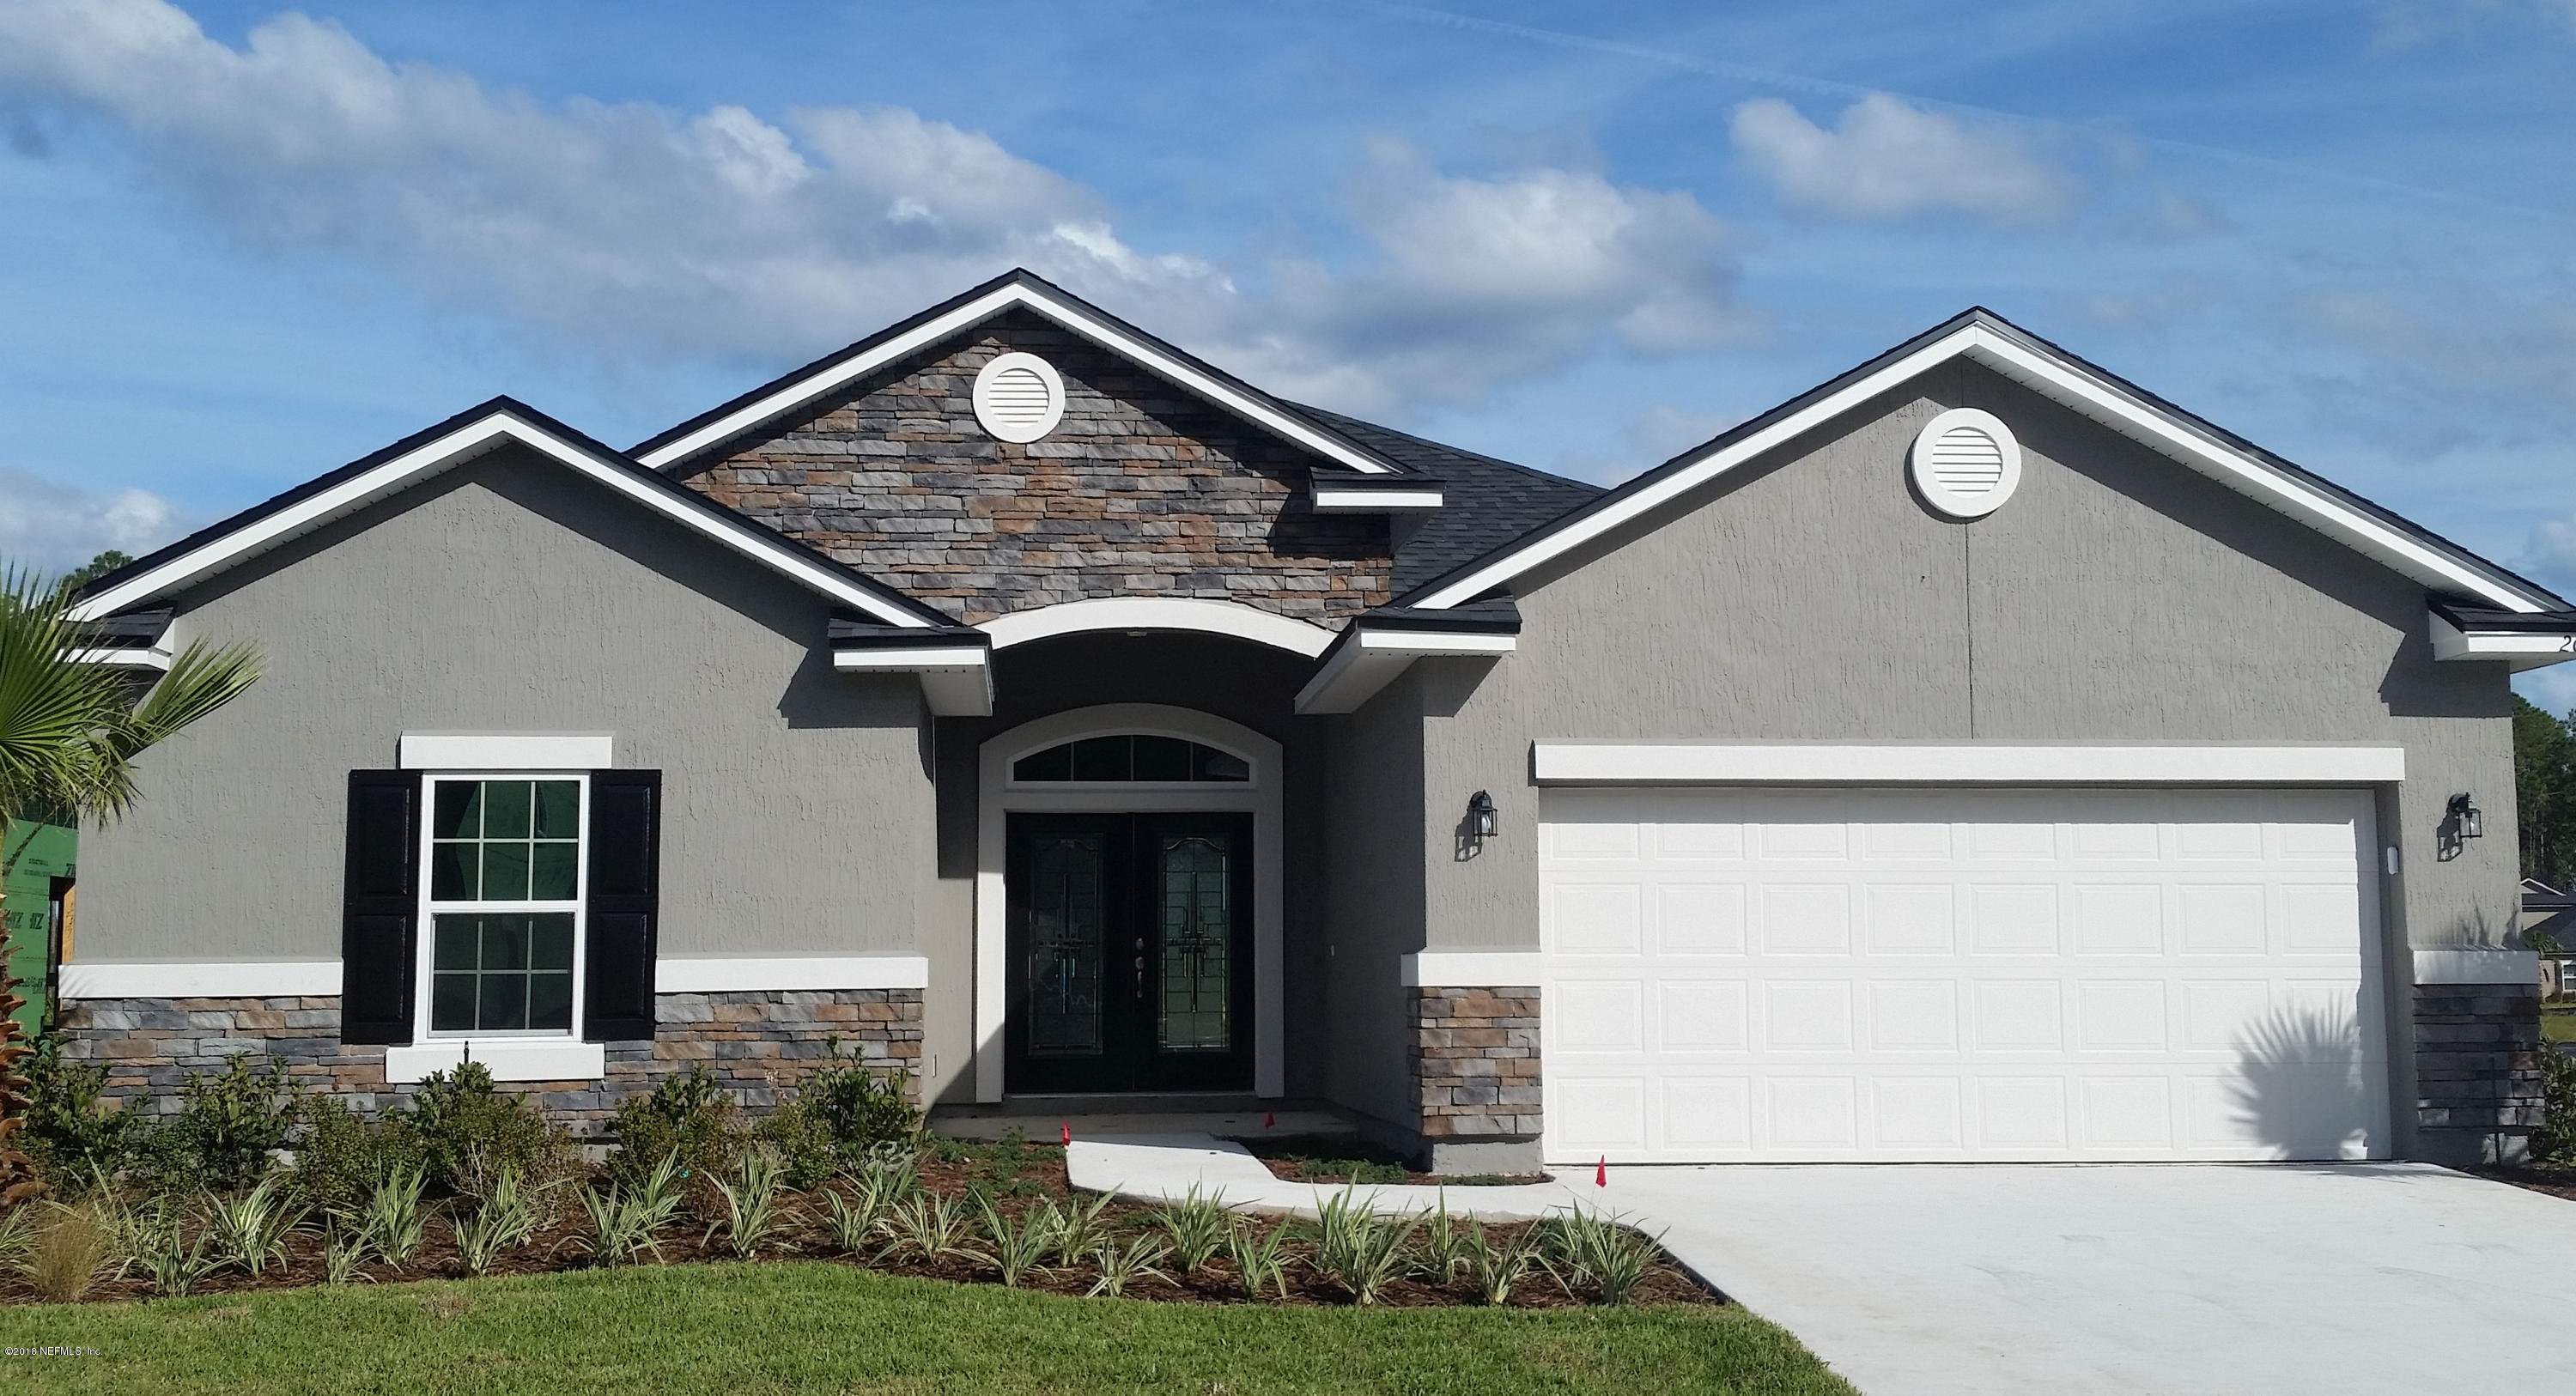 15-GREENVIEW-ST-AUGUSTINE-FL-32092